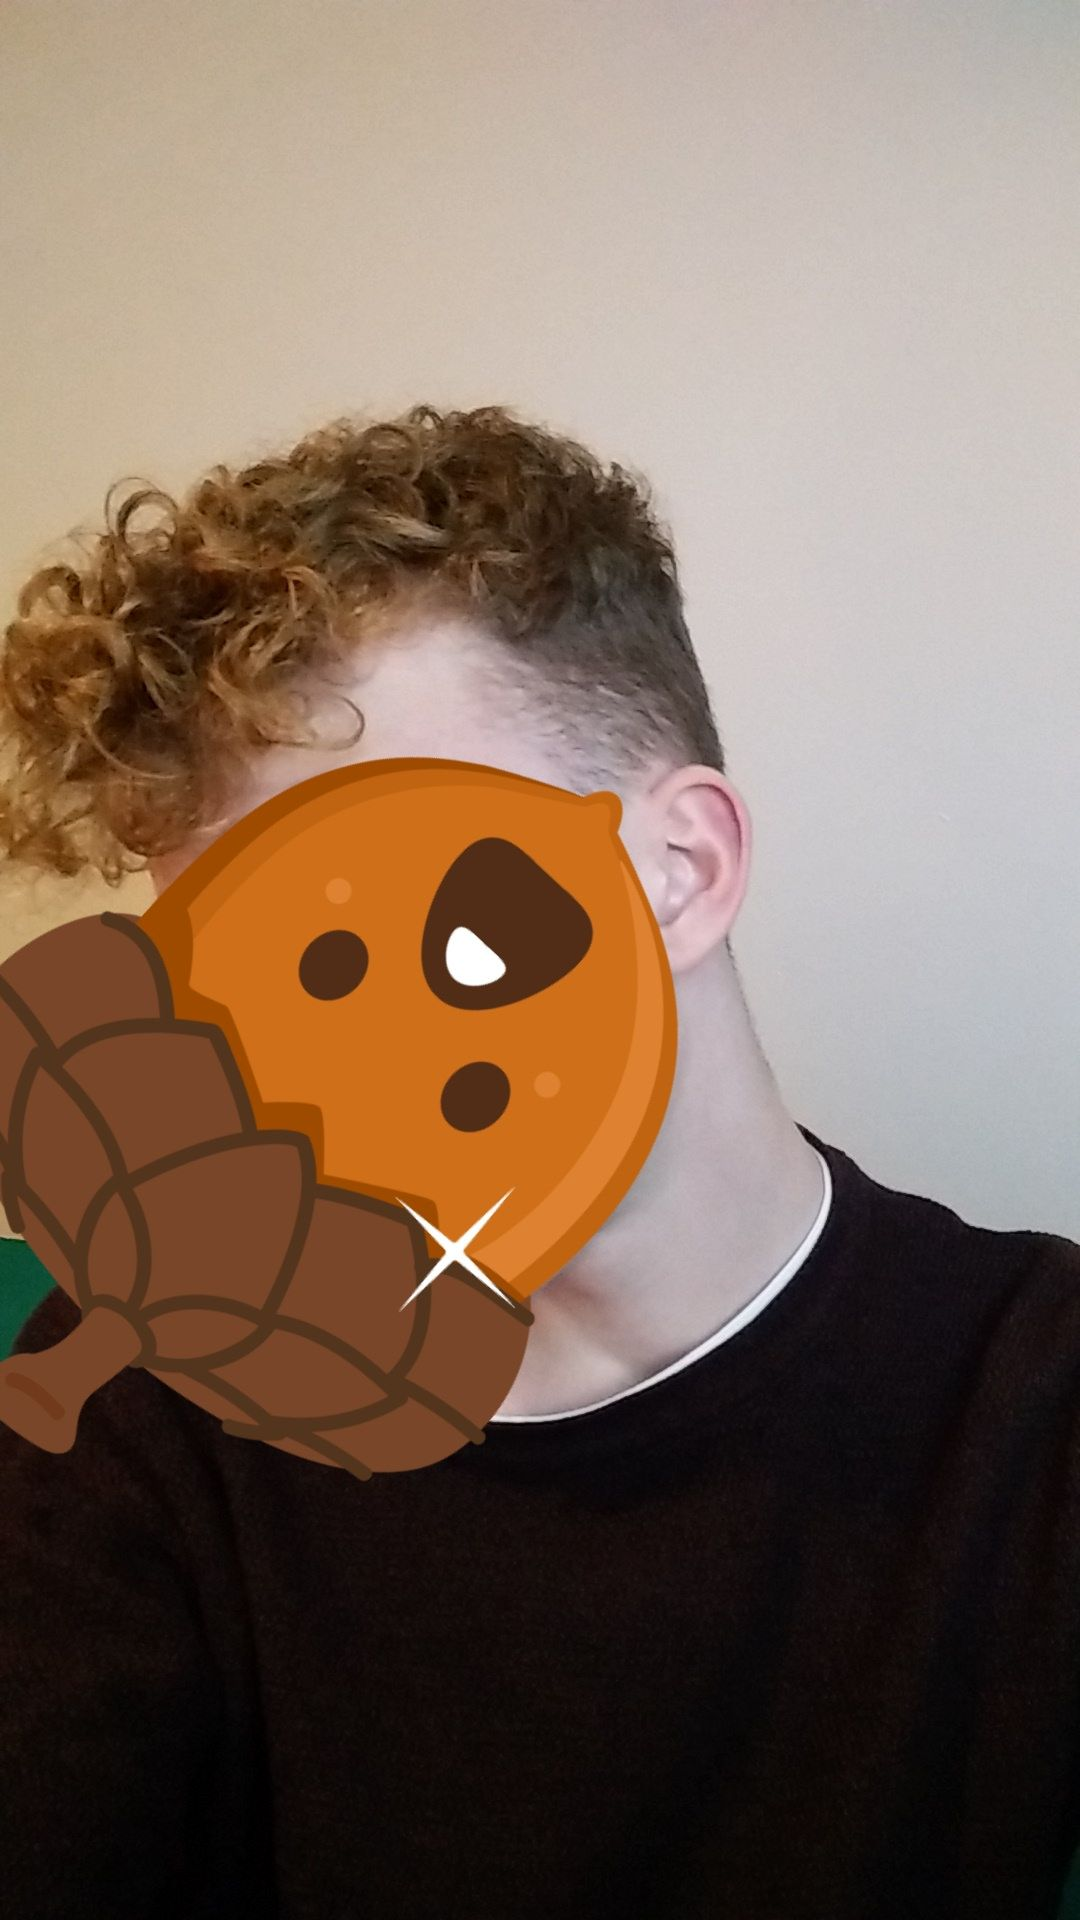 Please Help Ive Never Had A Real Haircut Before Any Advice To Help